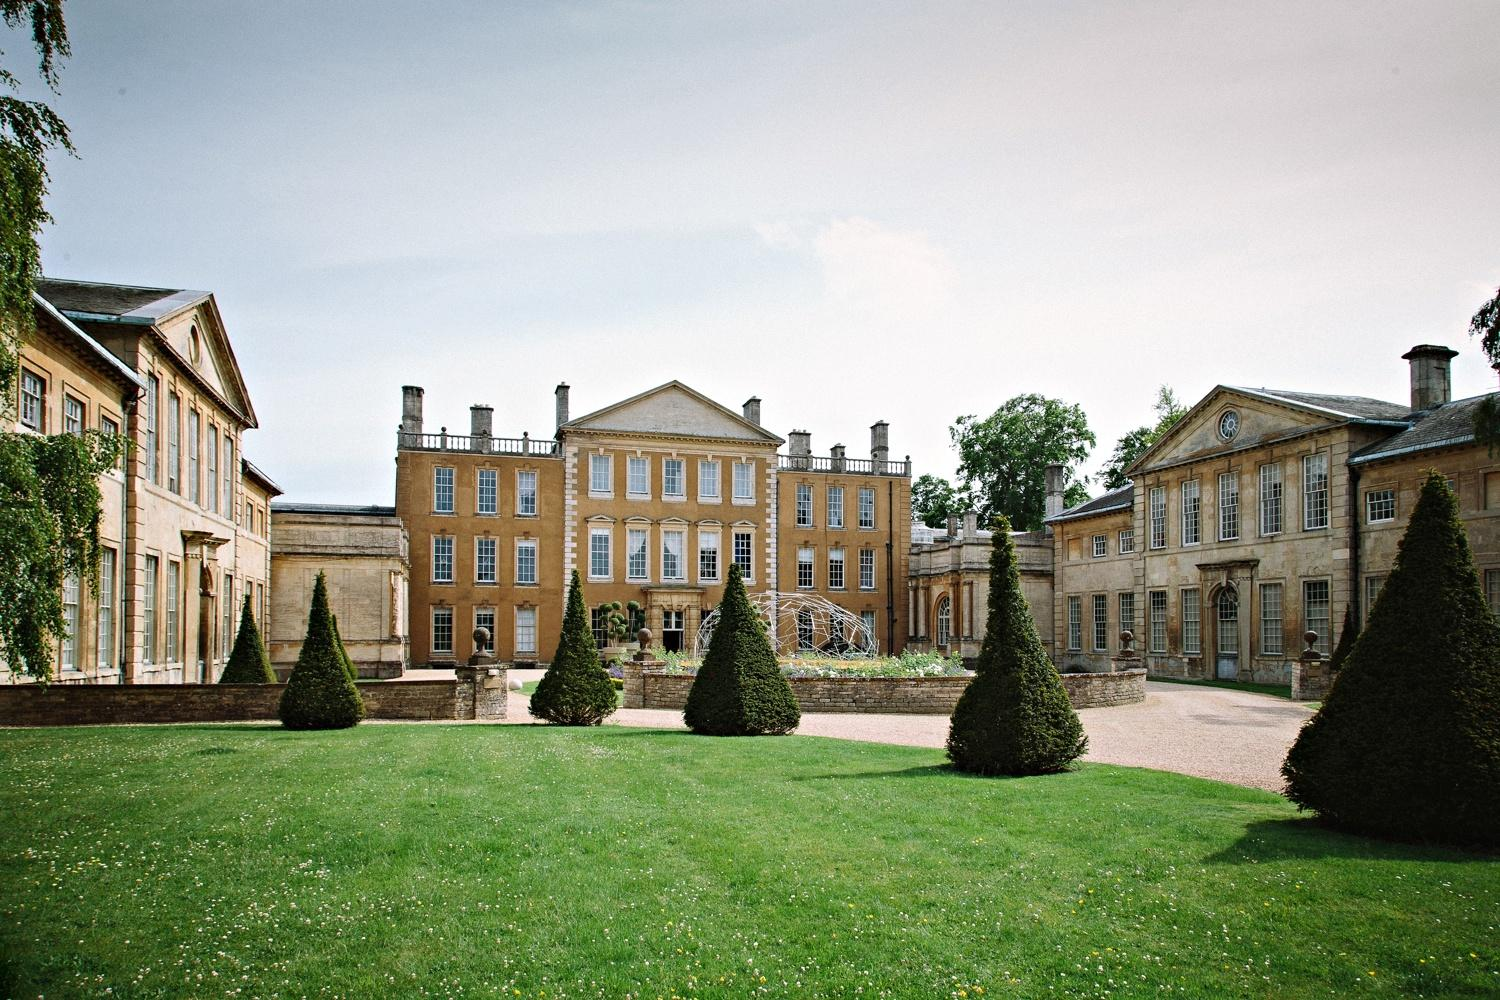 Venue: Aynhoe Park. Image from The Times